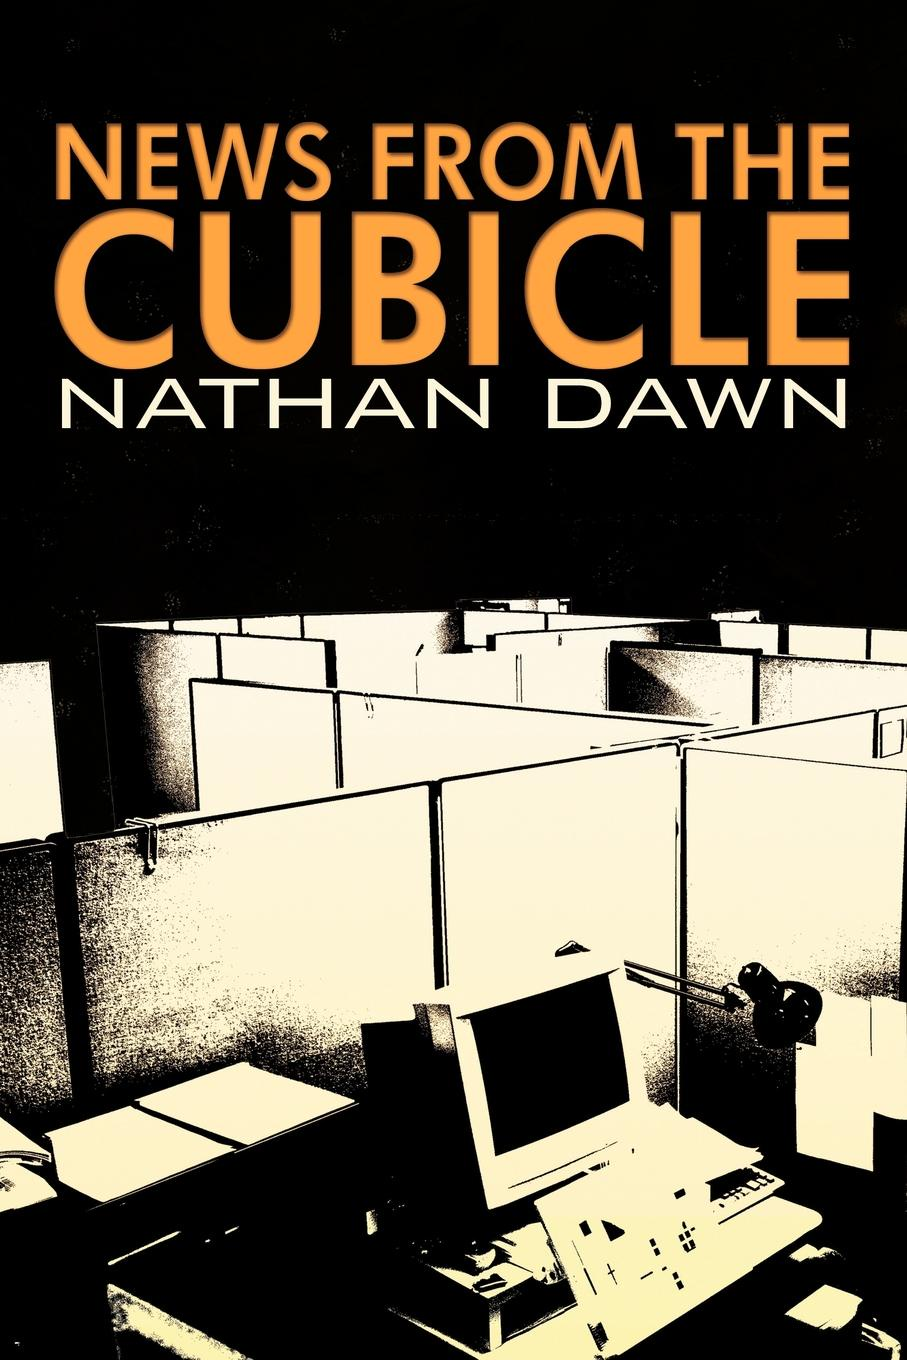 Nathan Dawn News from the Cubicle news